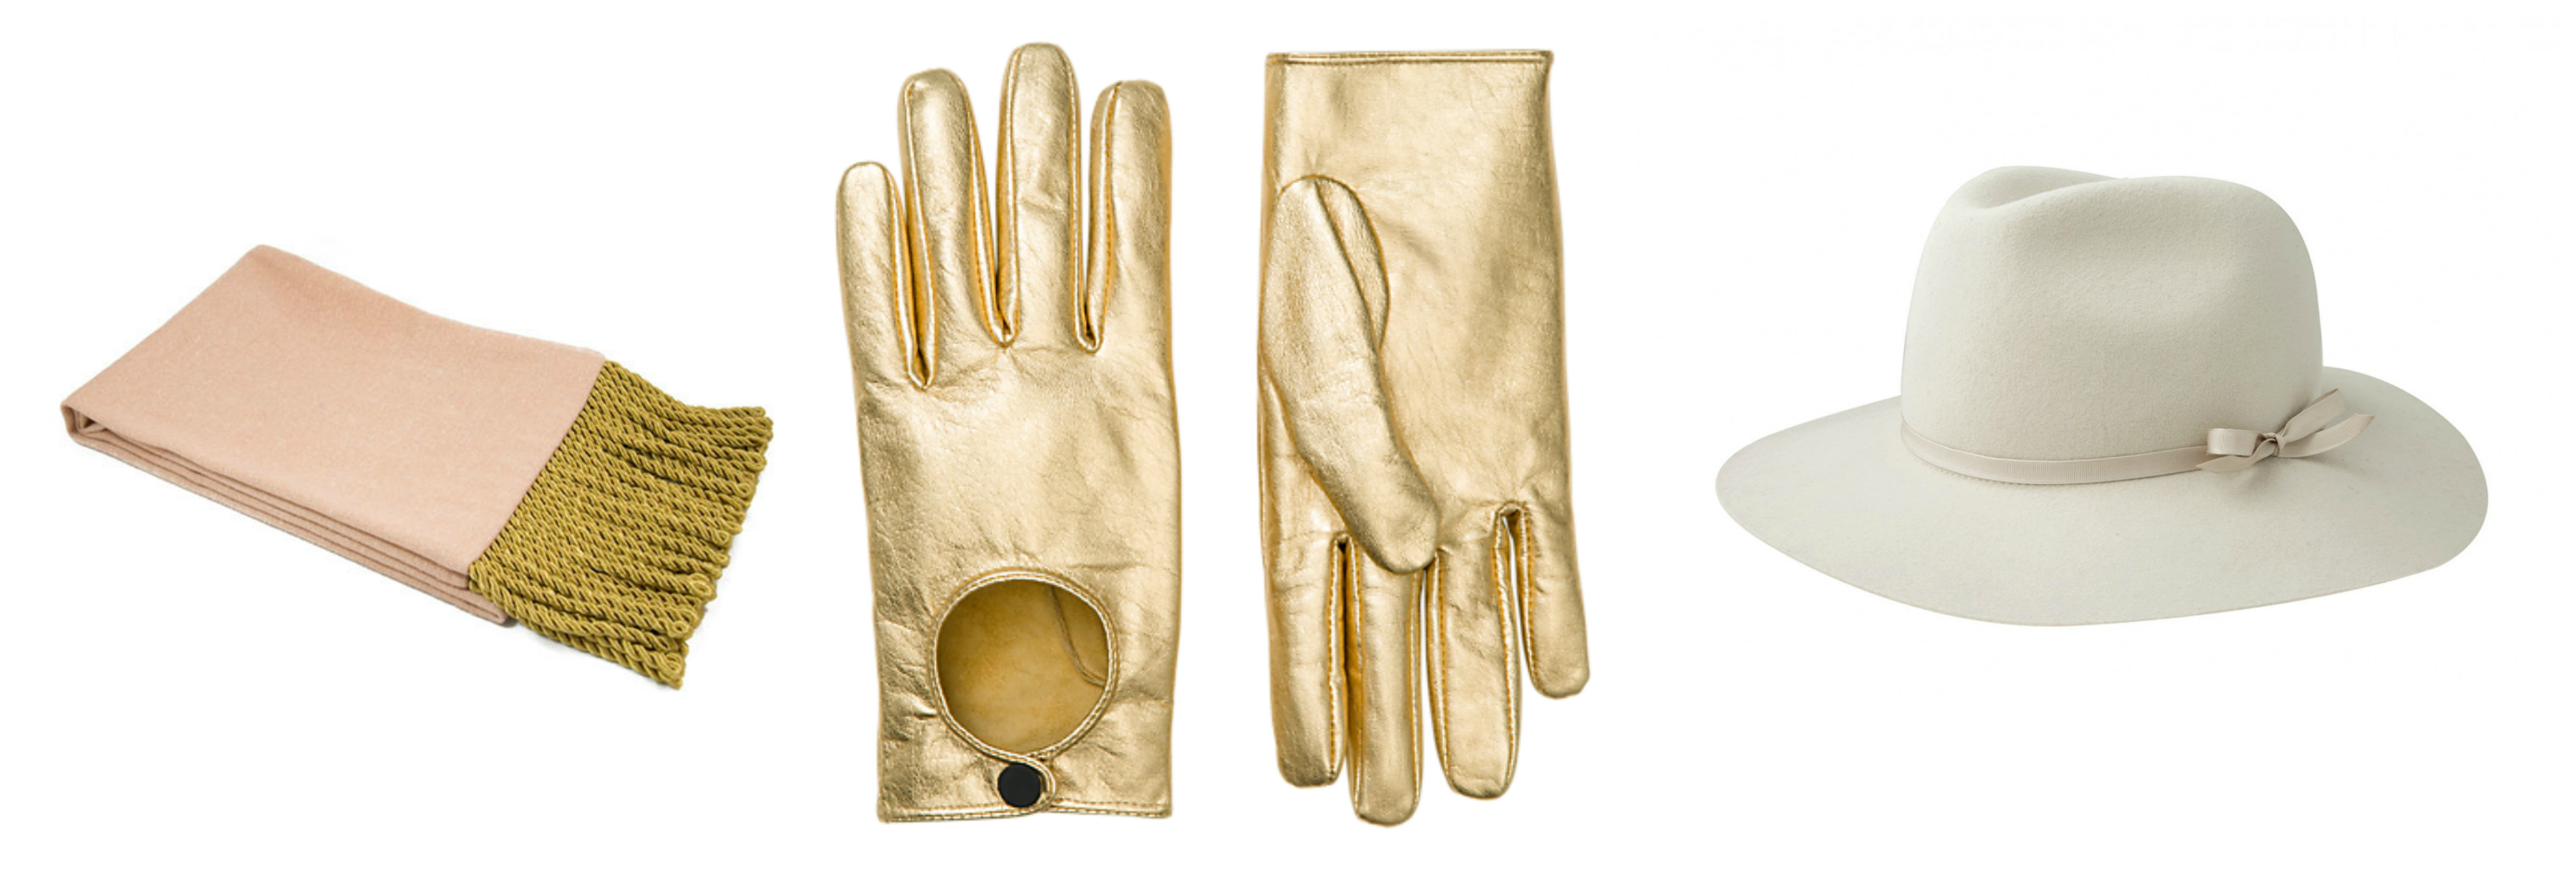 Gold driving gloves - In God We Trust Napoleon Scarf 80 Kate Spade Saturday Gold Driving Gloves 75 Otte New York Alexis Hat 158